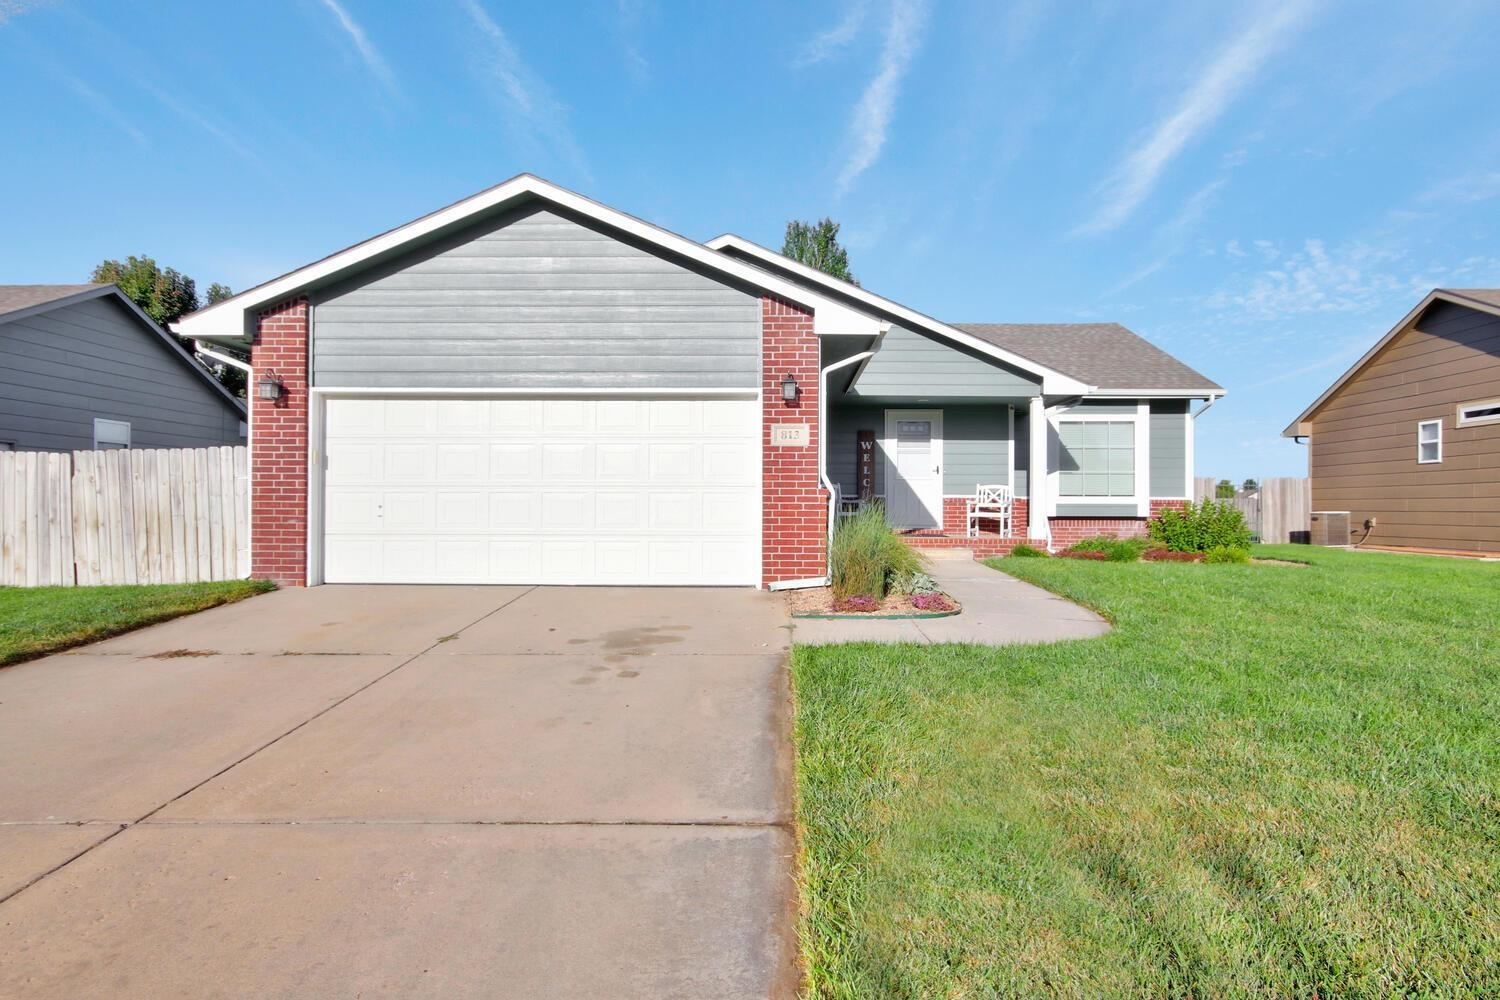 Great 5 bed / 3 bath home with many updates. New windows 2015, new exterior doors 2017, new AC 2018,